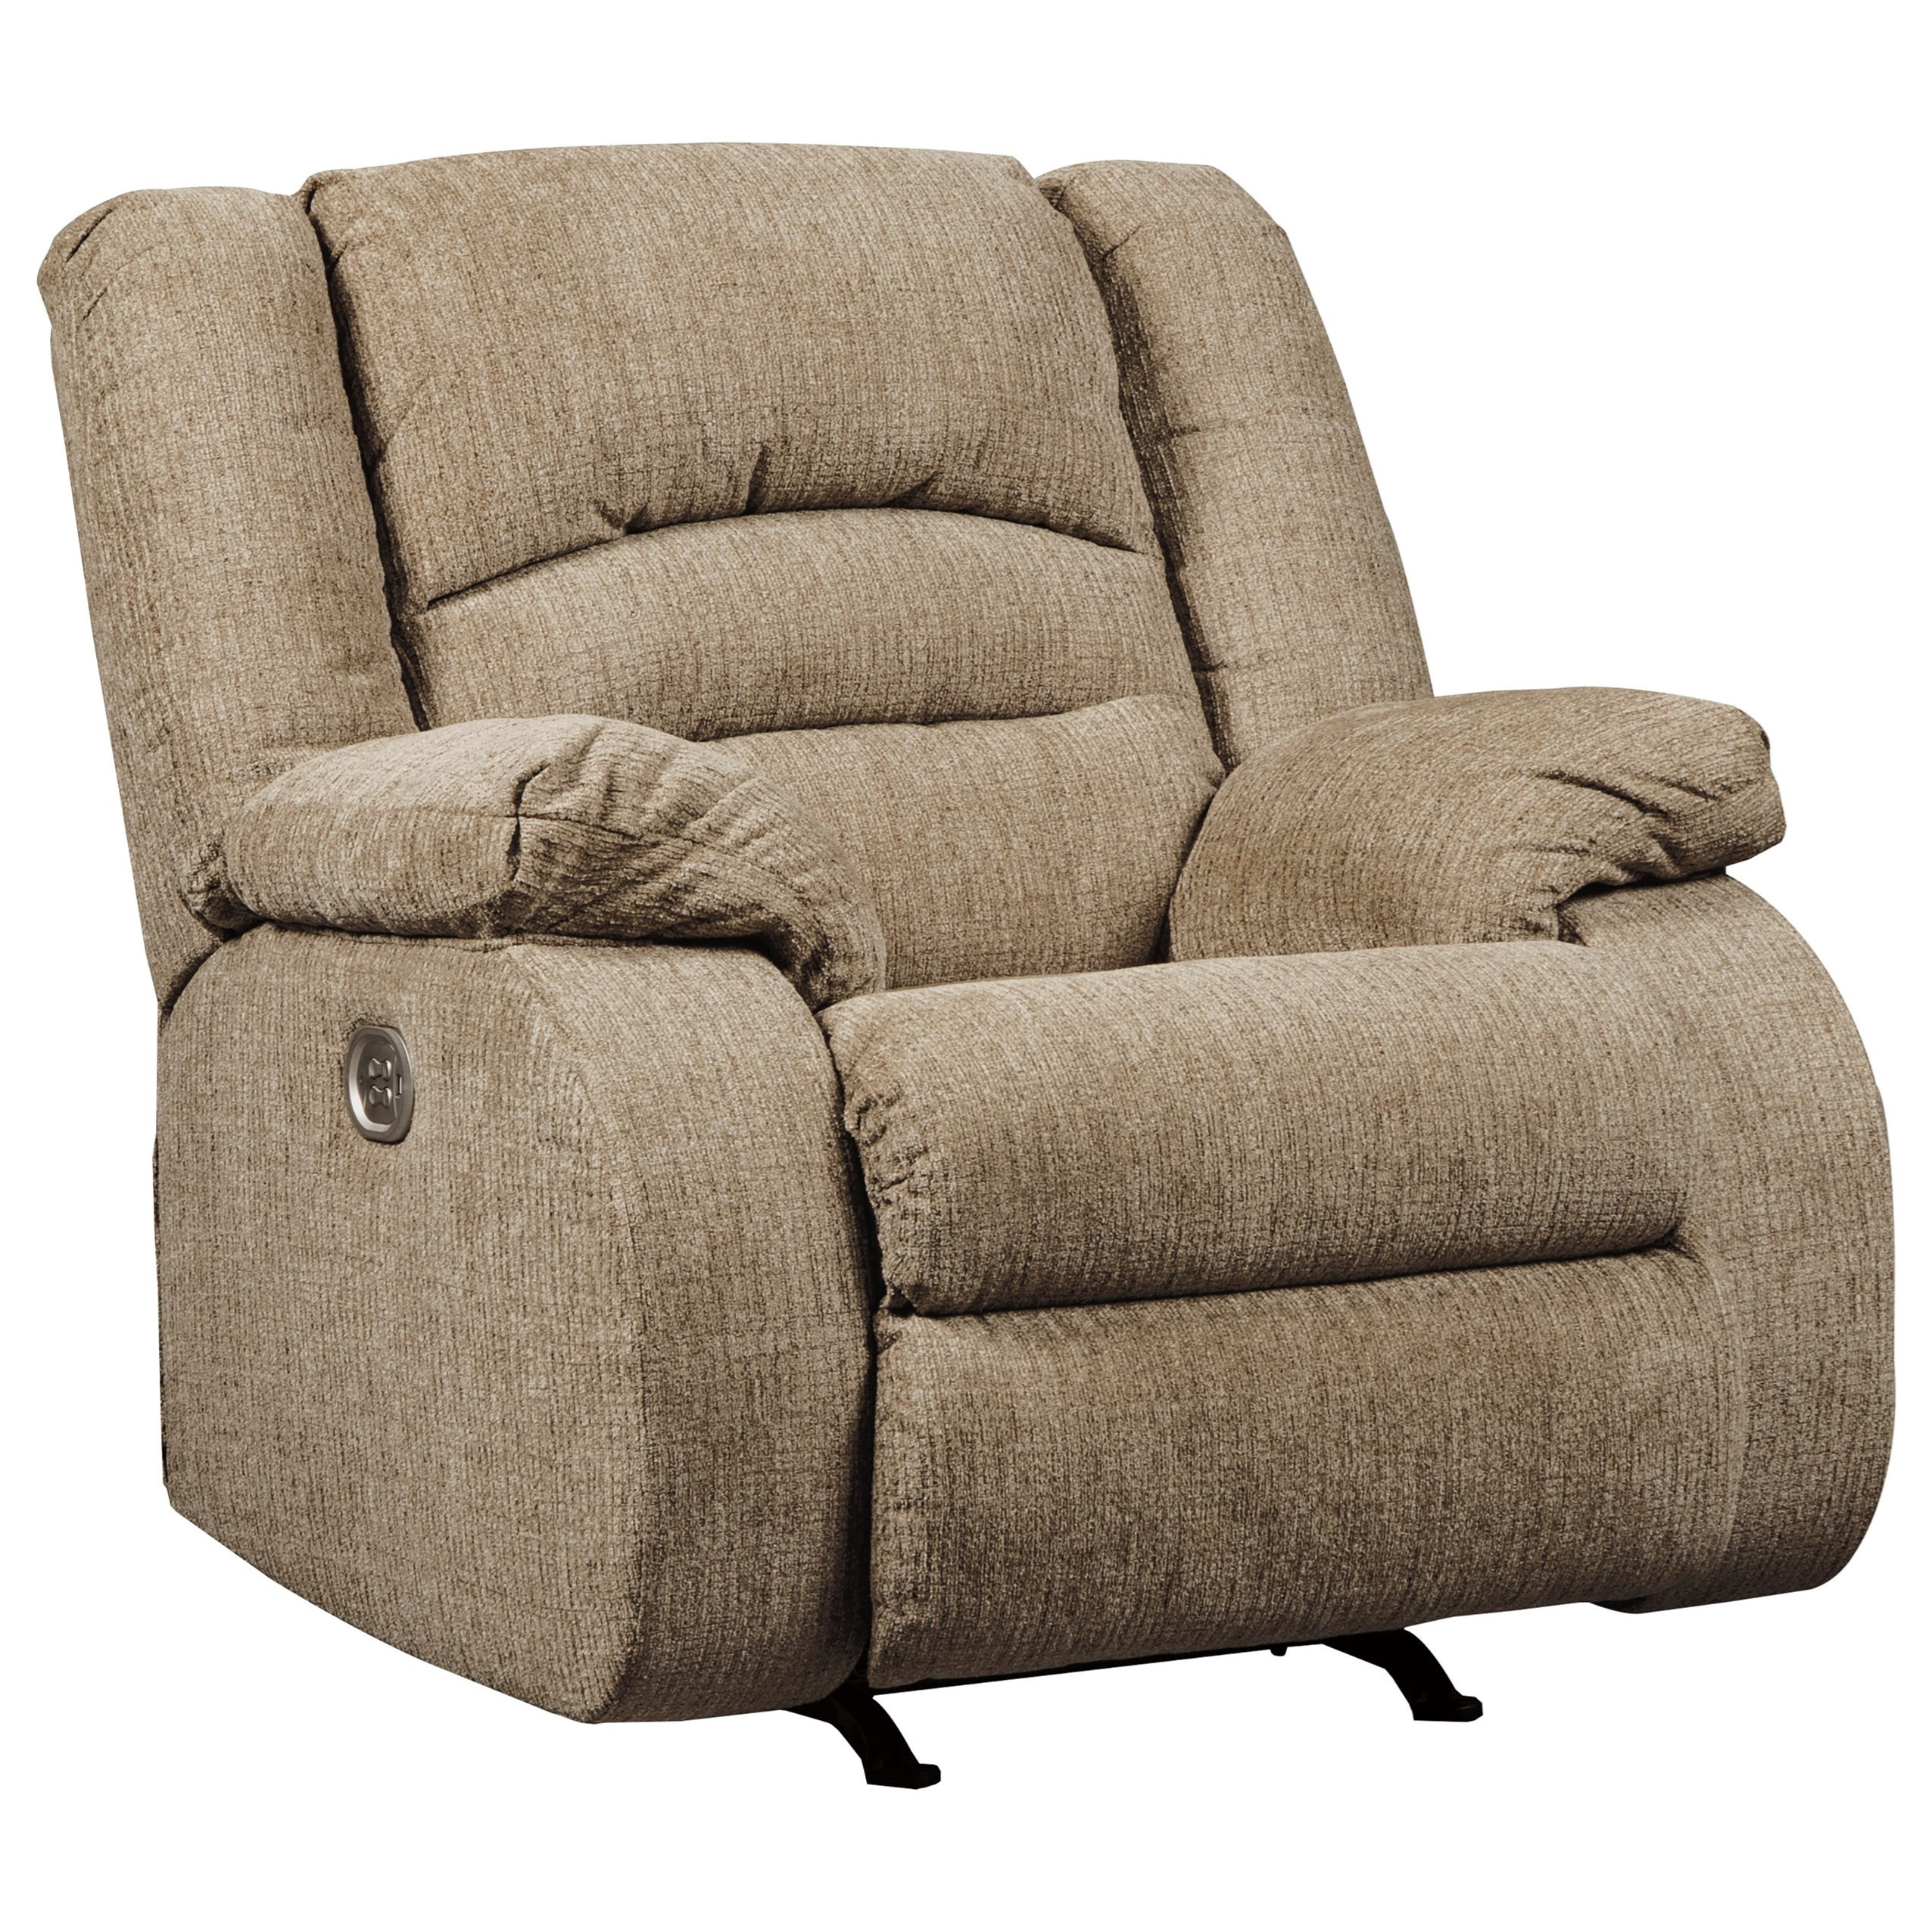 Signature Design by Ashley Labarre Power Recliner with Adjustable Headrest - Item Number: 8140313